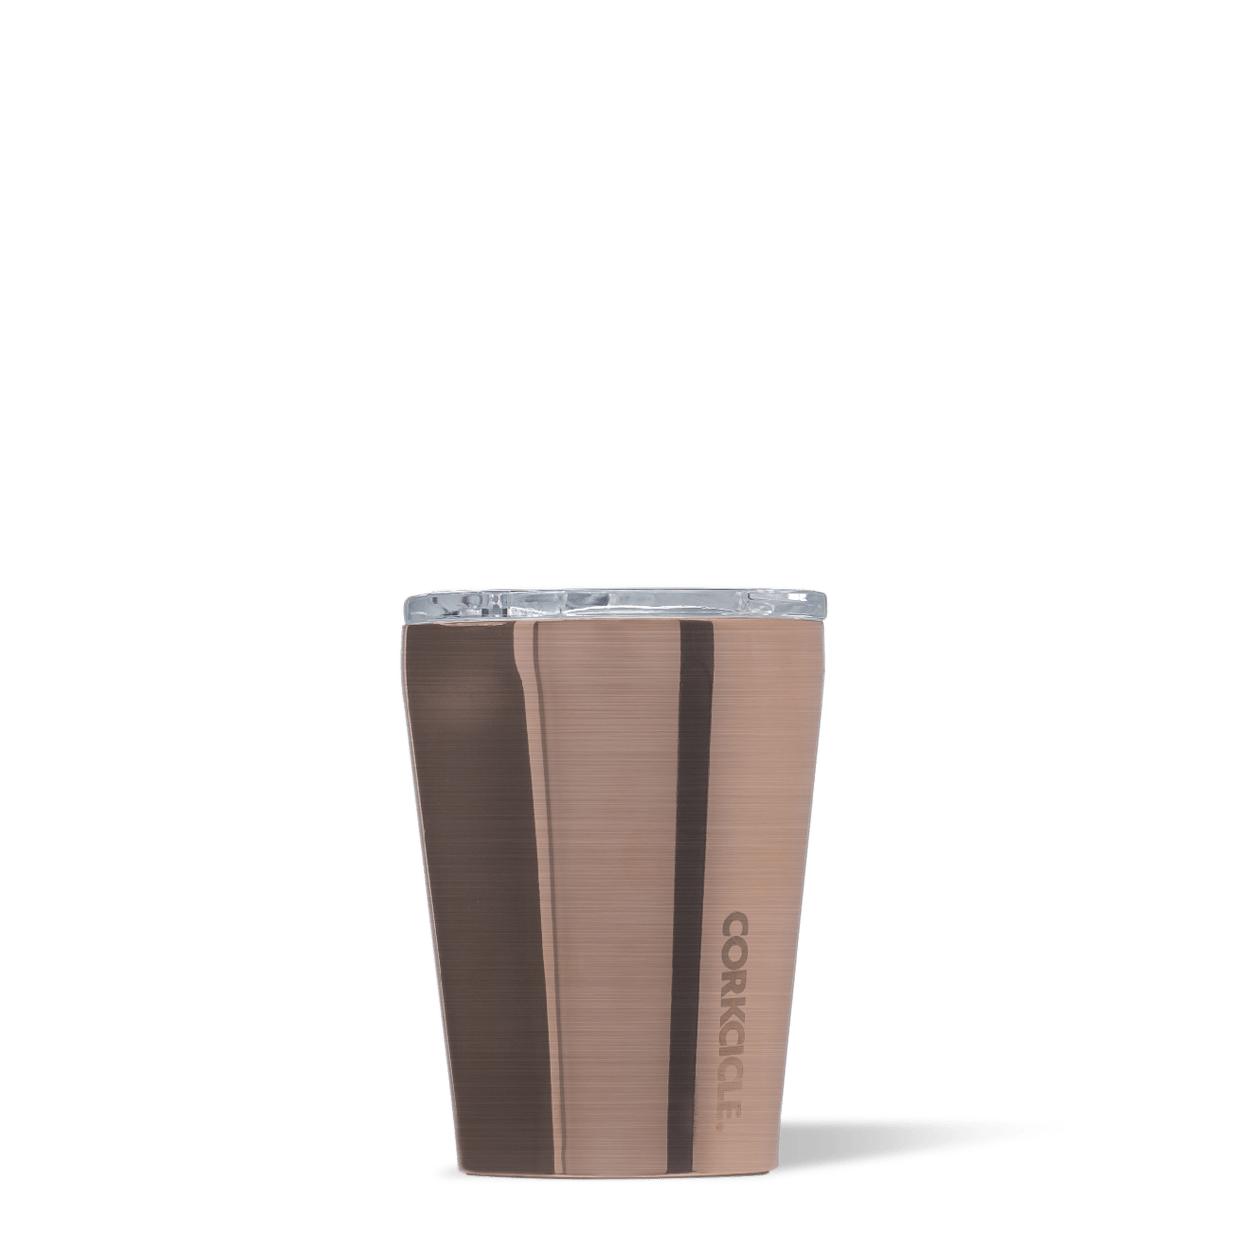 Corkcicle 12oz Copper Metallic Tumbler Side View.